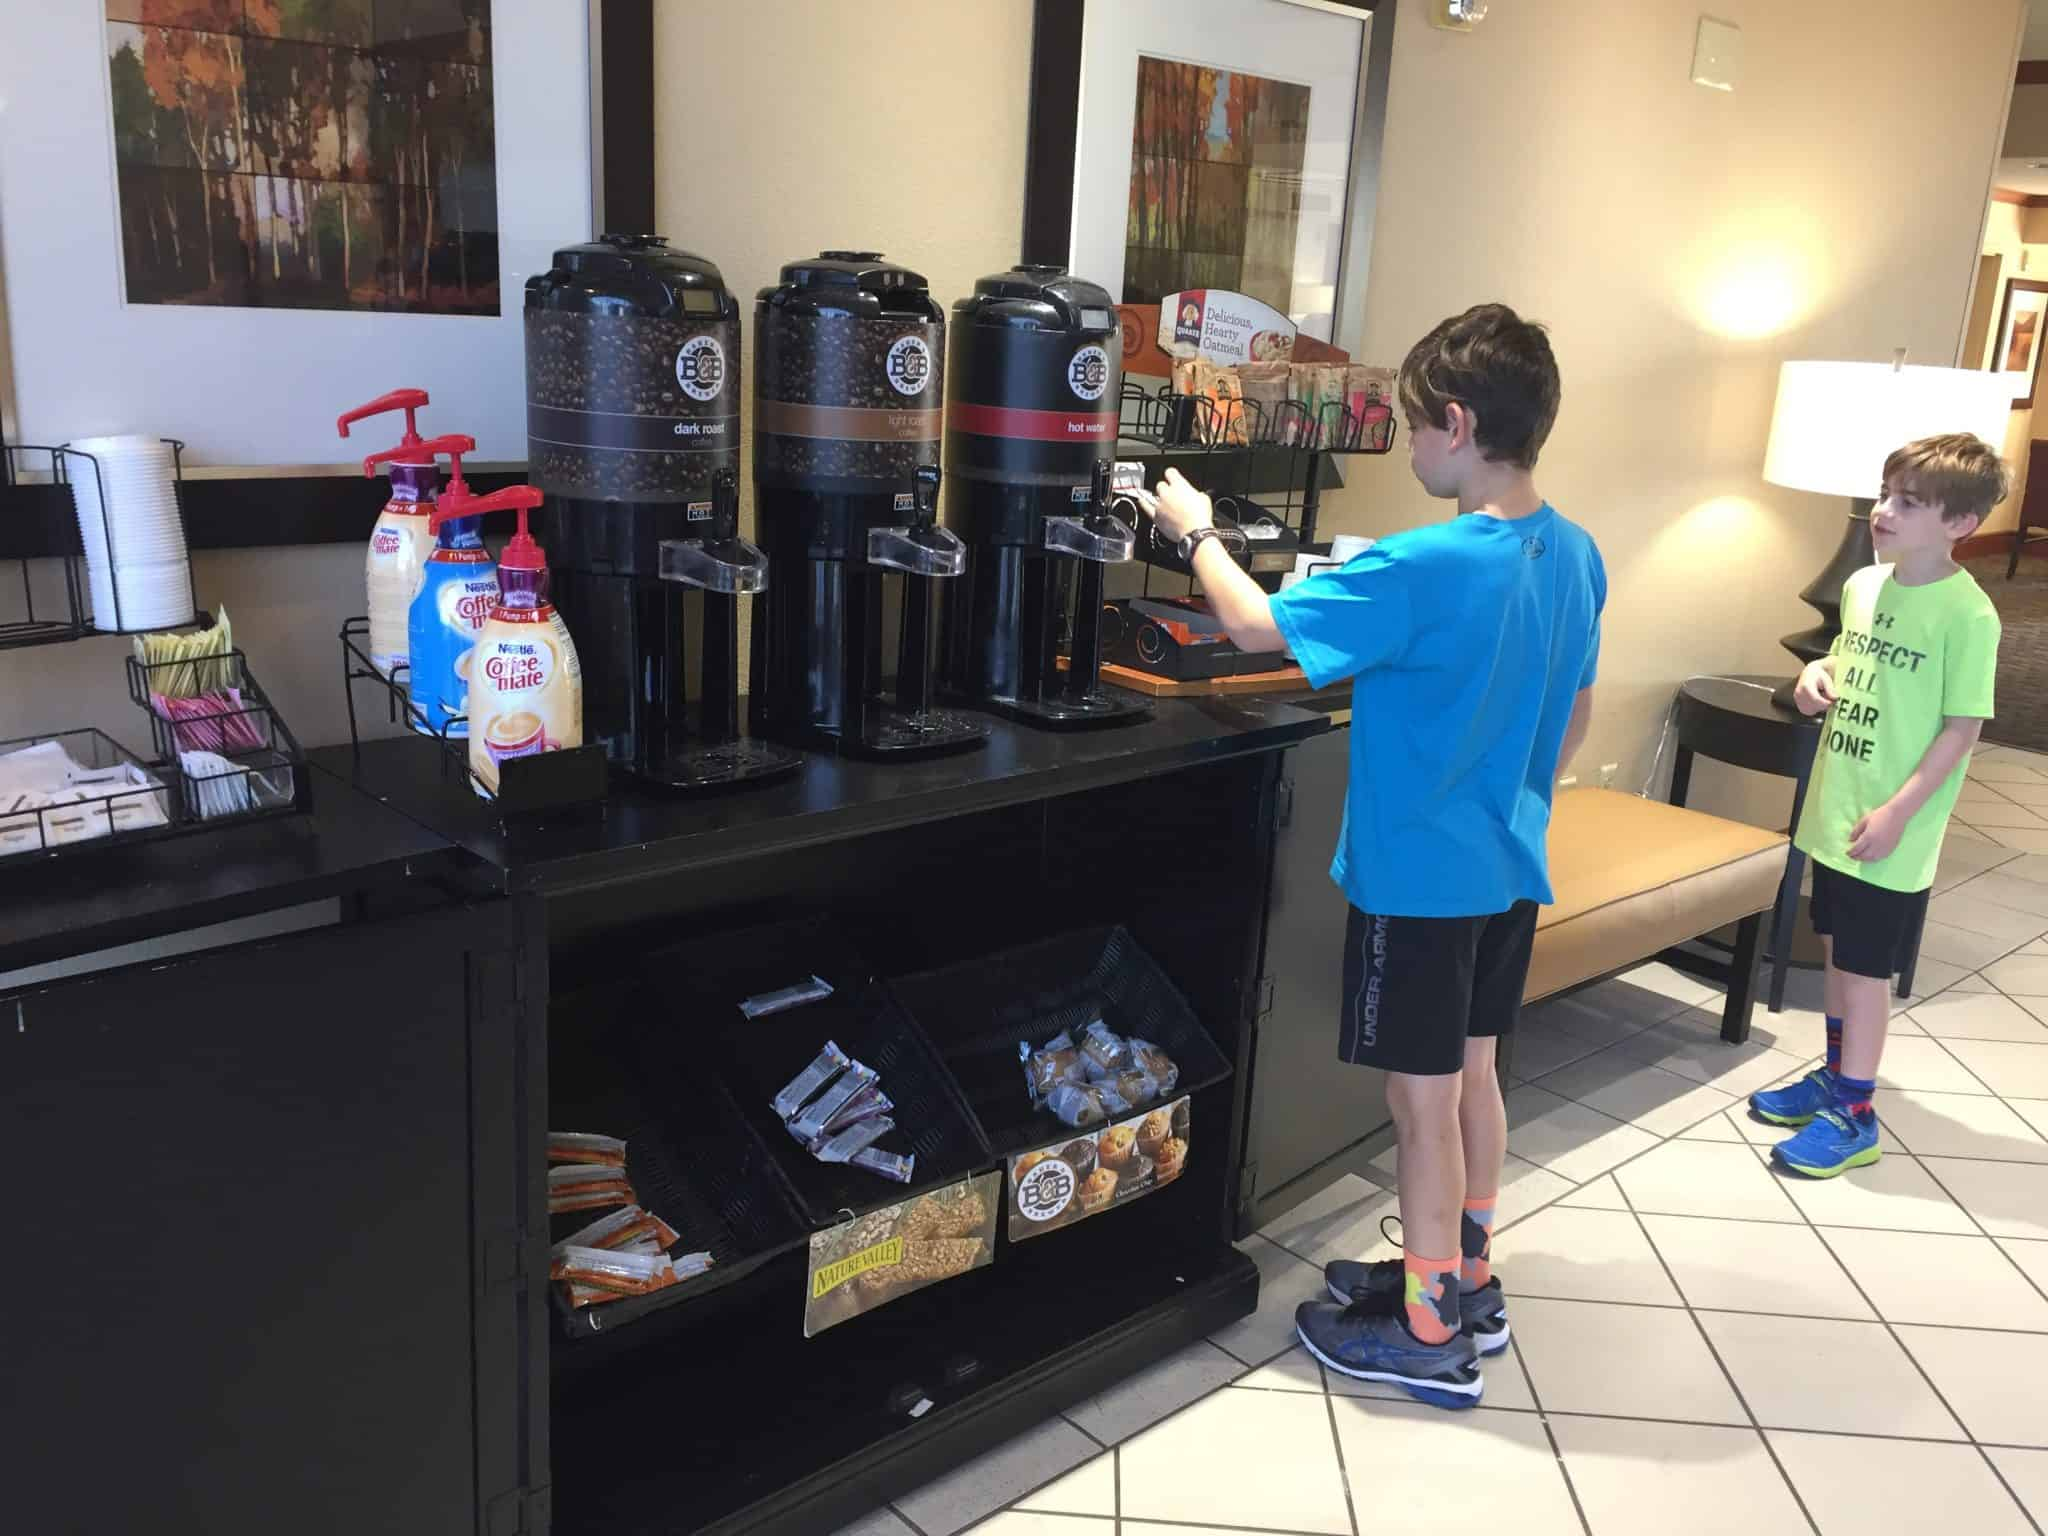 Extended Stay America for Family Friendly and Pet Friendly Travel free grab and go breakfast